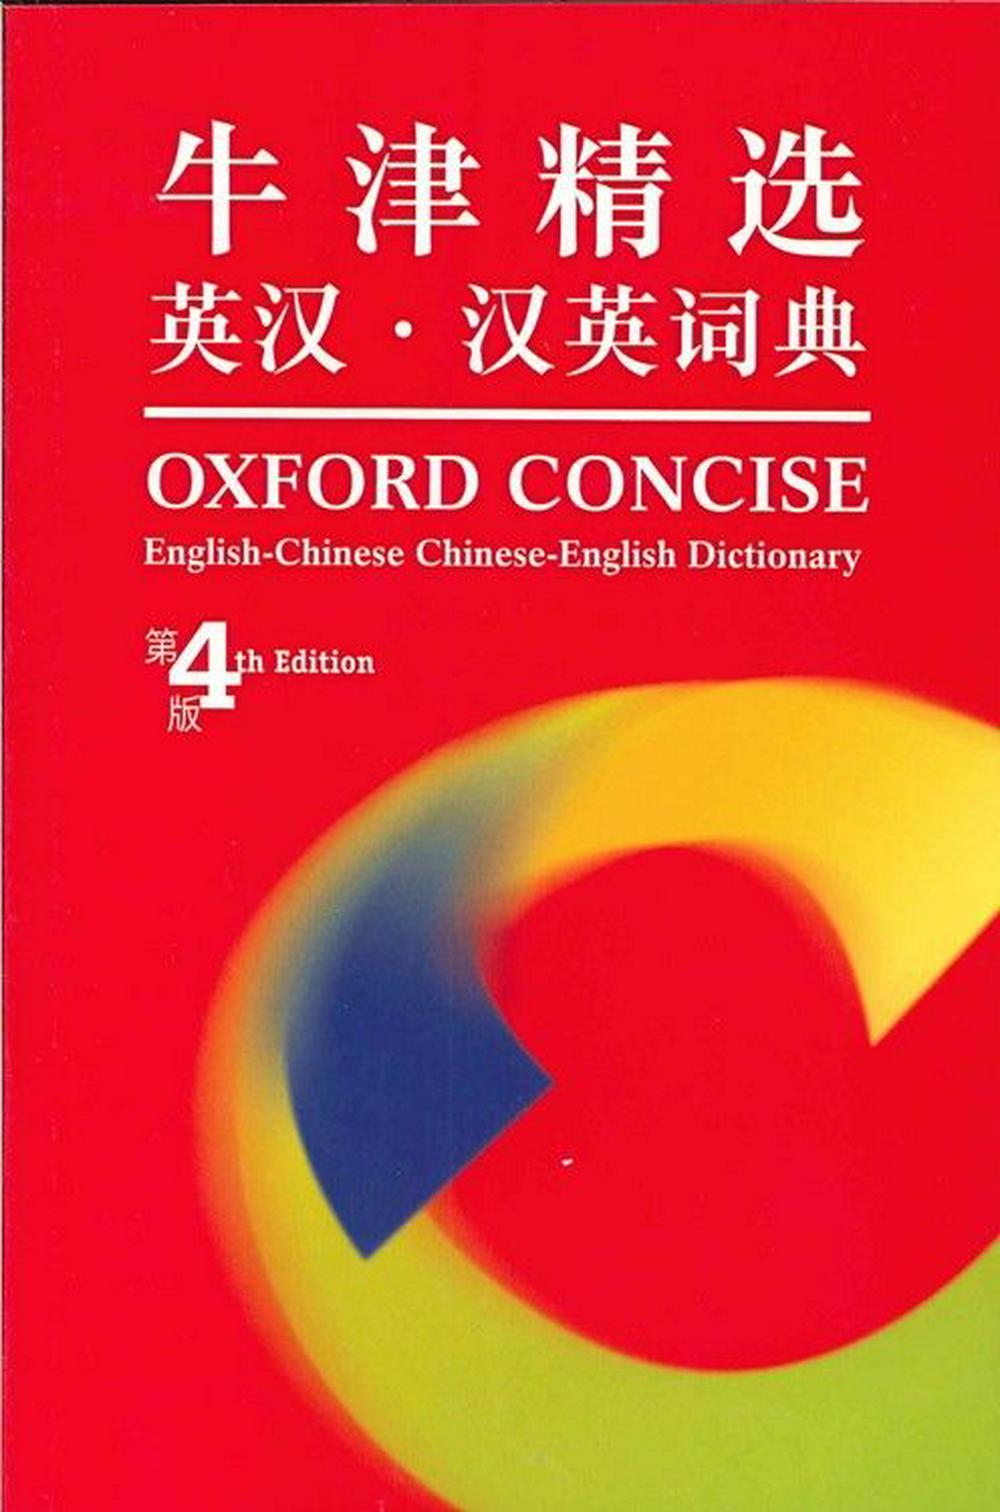 Concise English-Chinese Chinese-English Dictionary by Martin H. Manser, 朱原, 王良碧, 任永长, 吴景荣, ISBN: 9780198005933